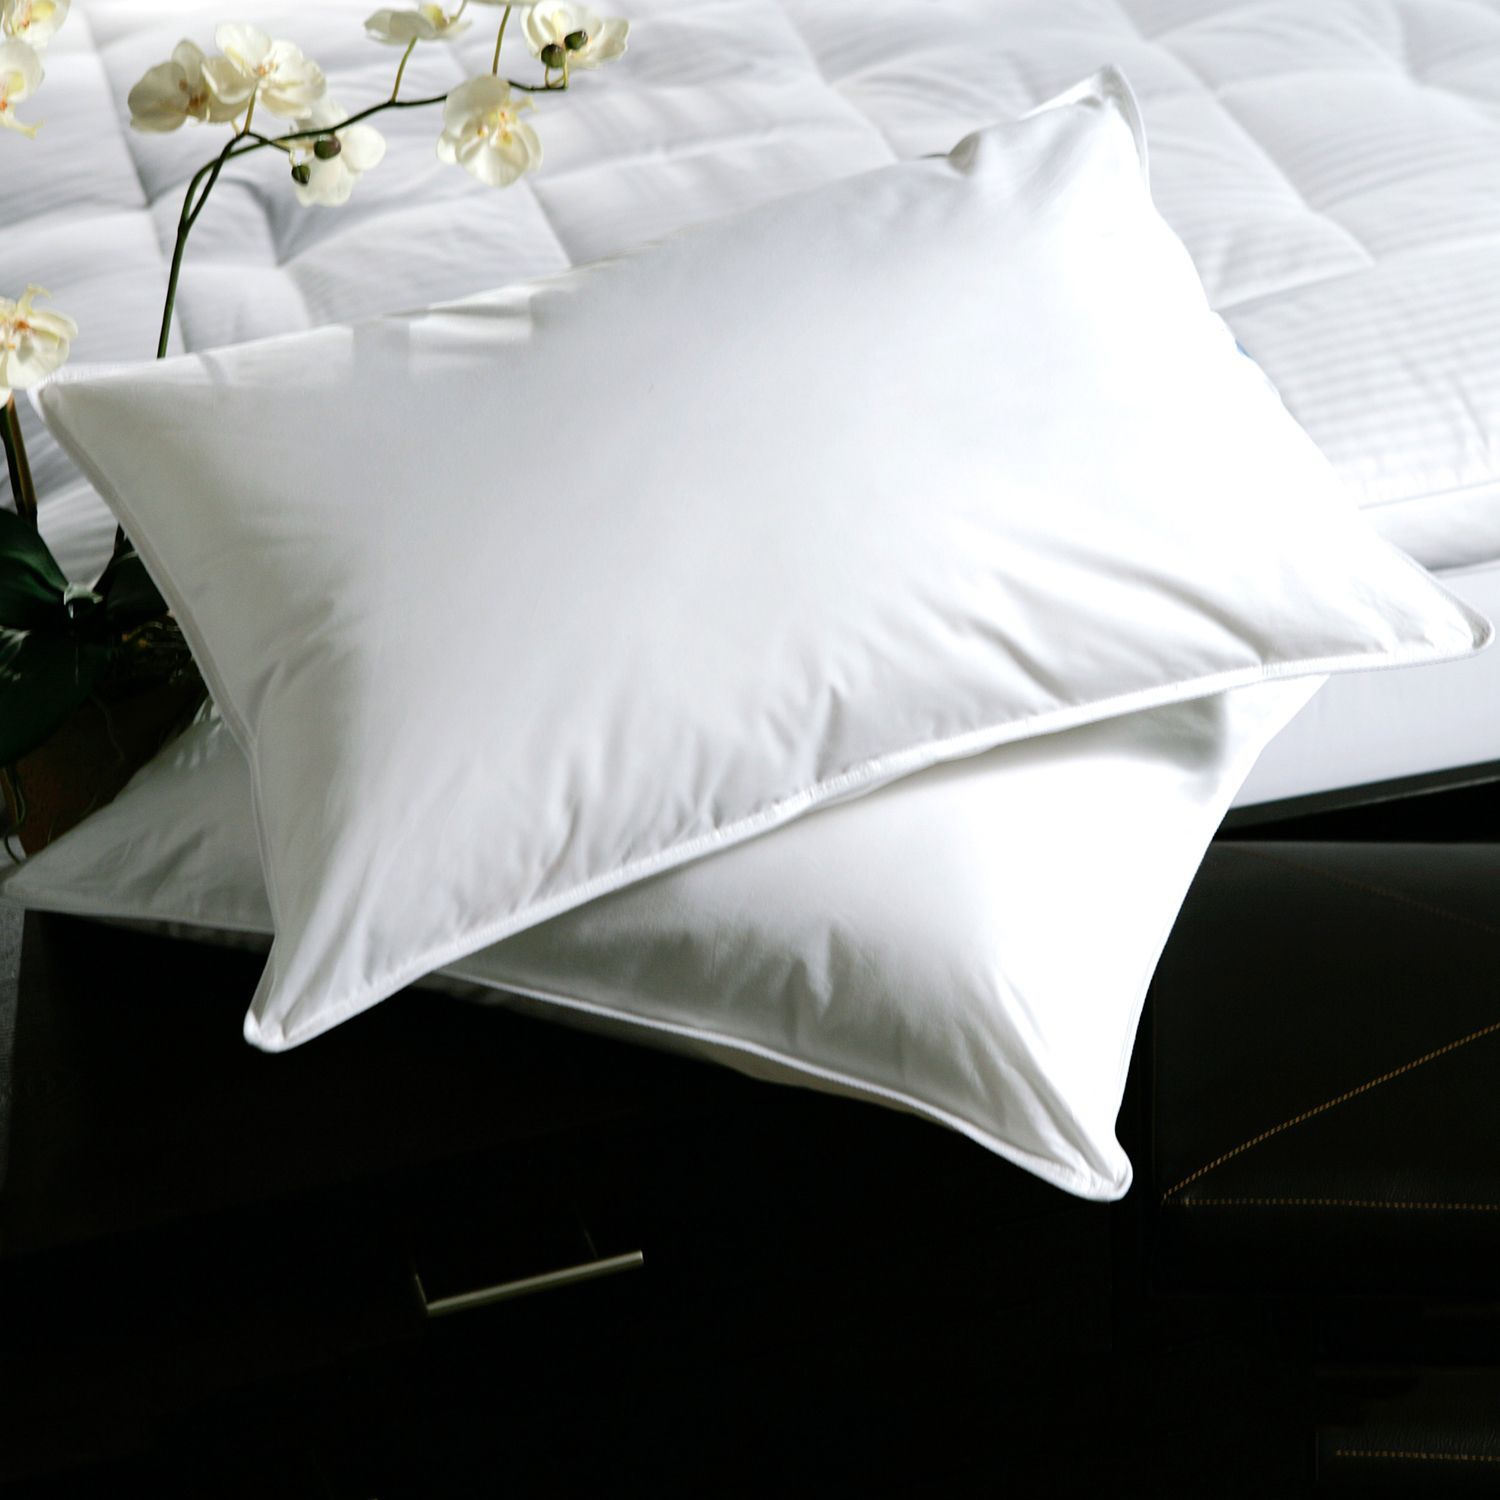 Sleep In Comfort With These Soft Goose Feather Pillows